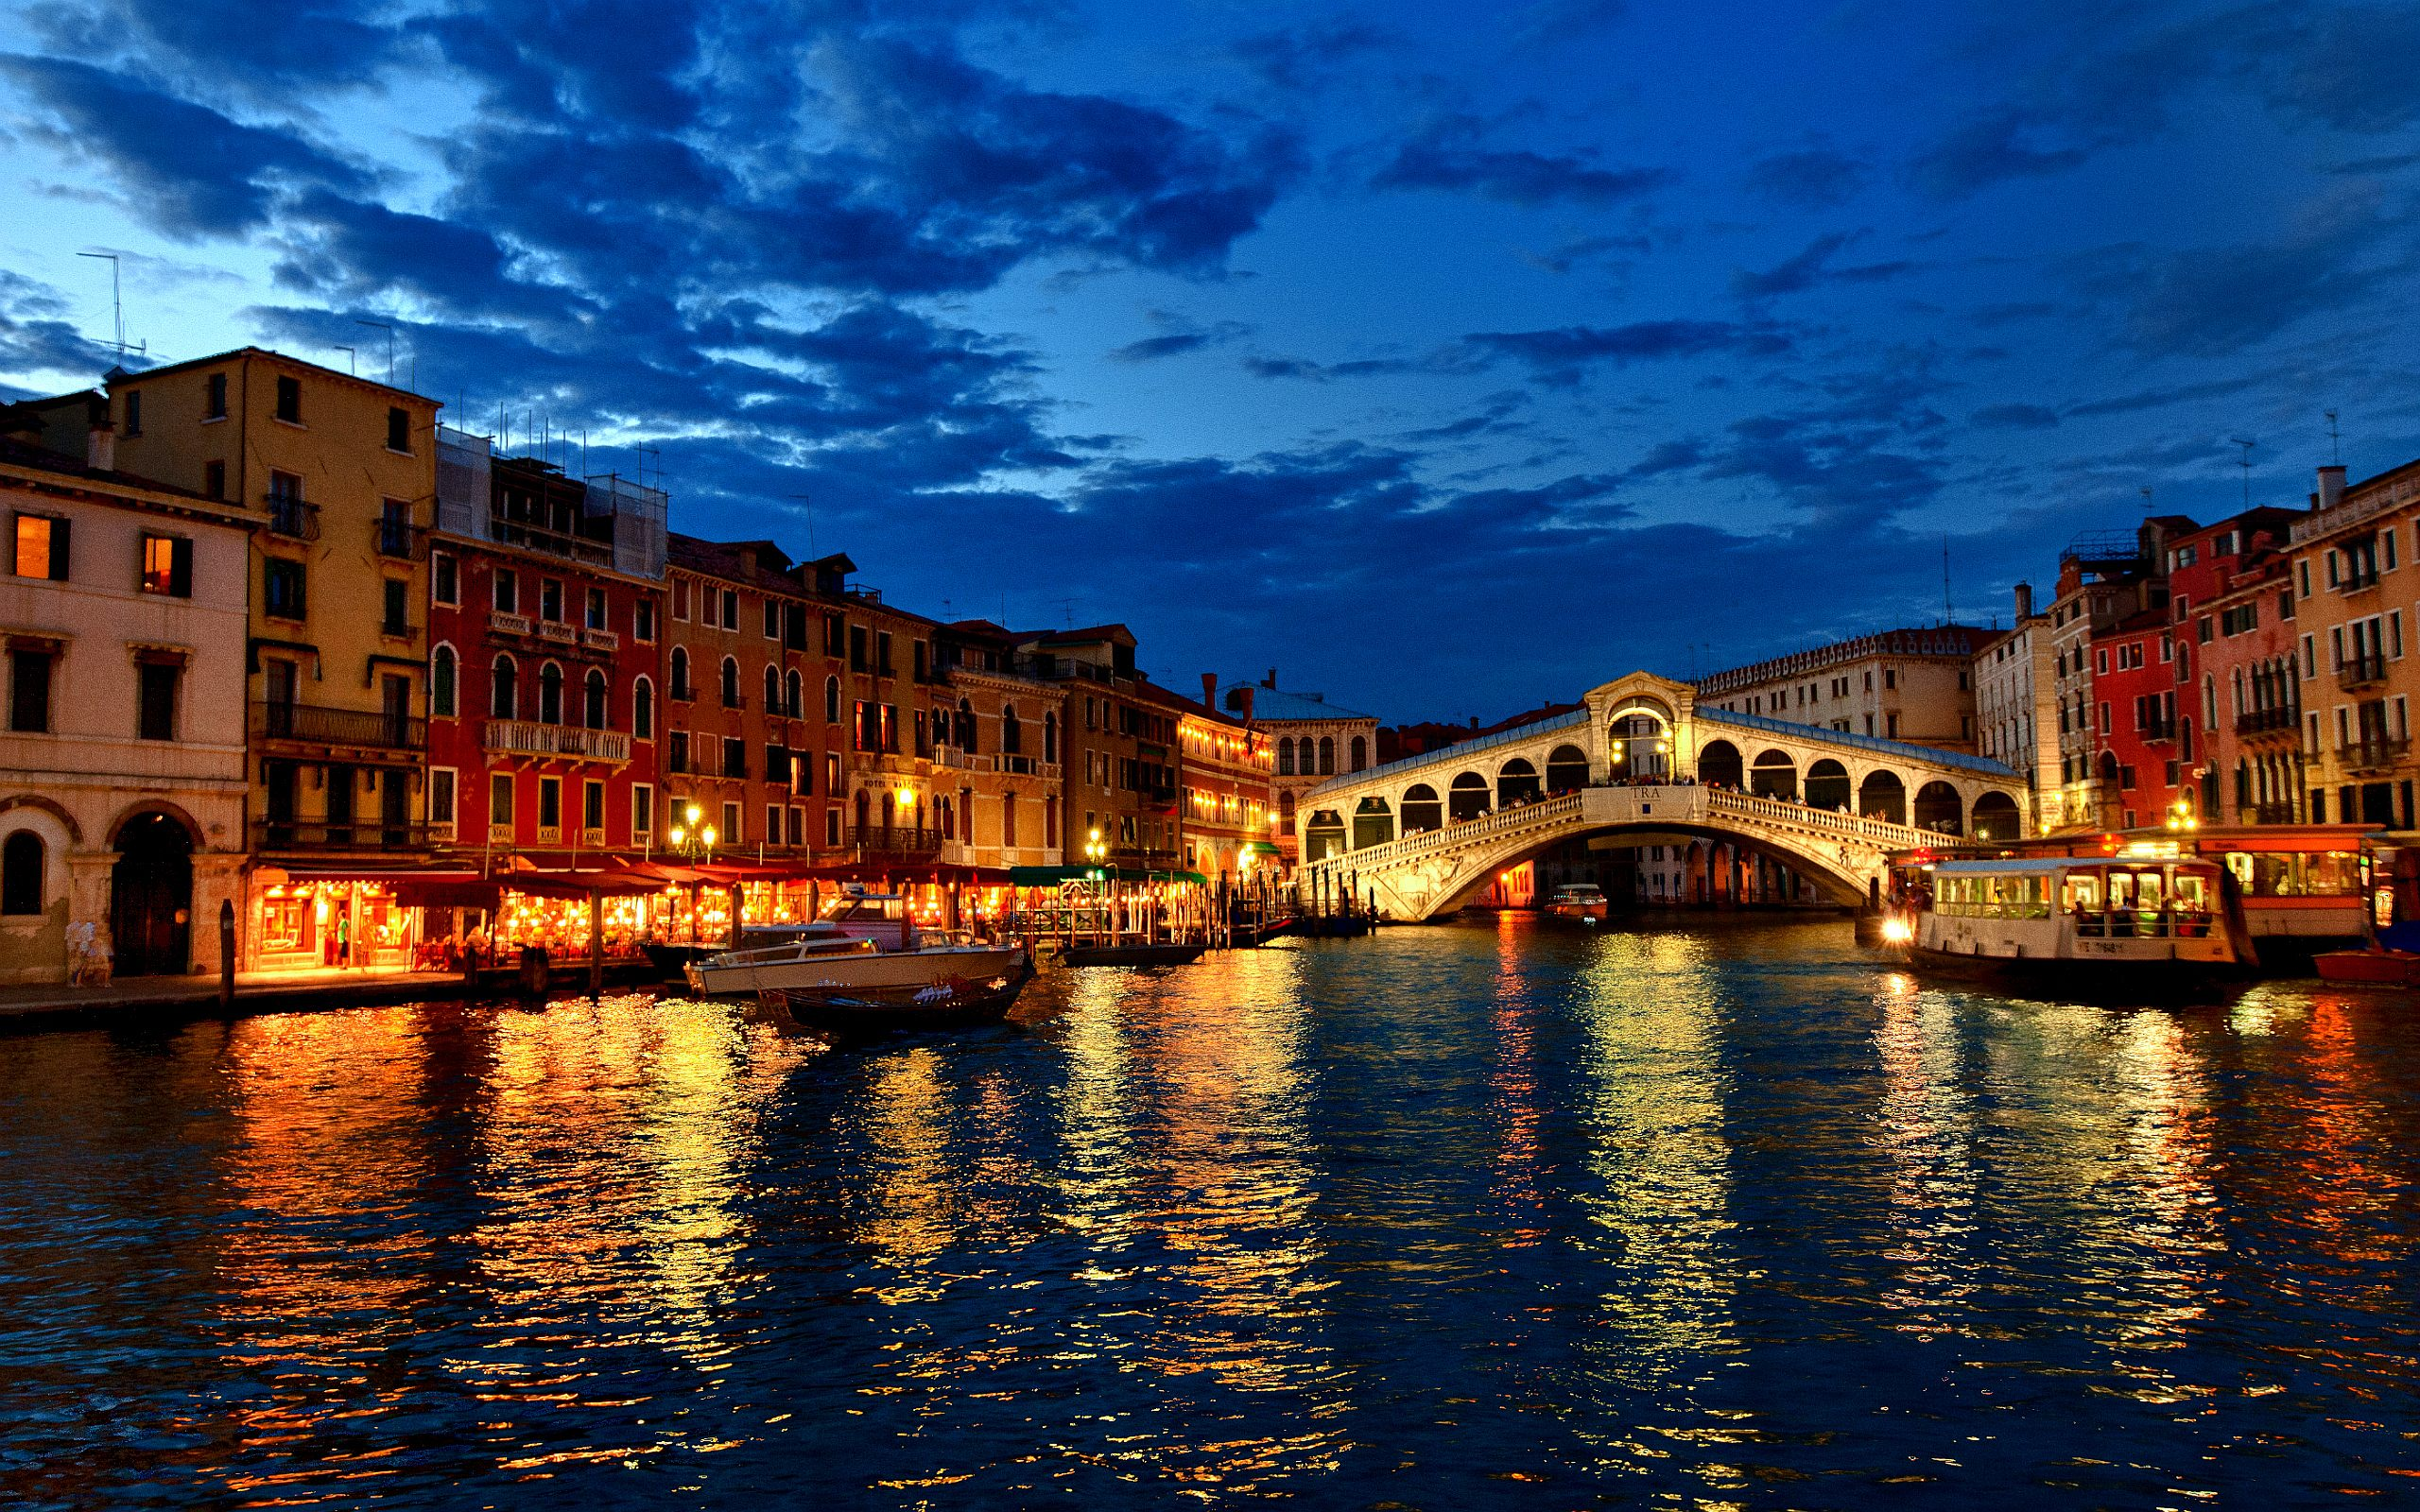 For more information on Al Ponte Antico read our review or visit the 2560x1600